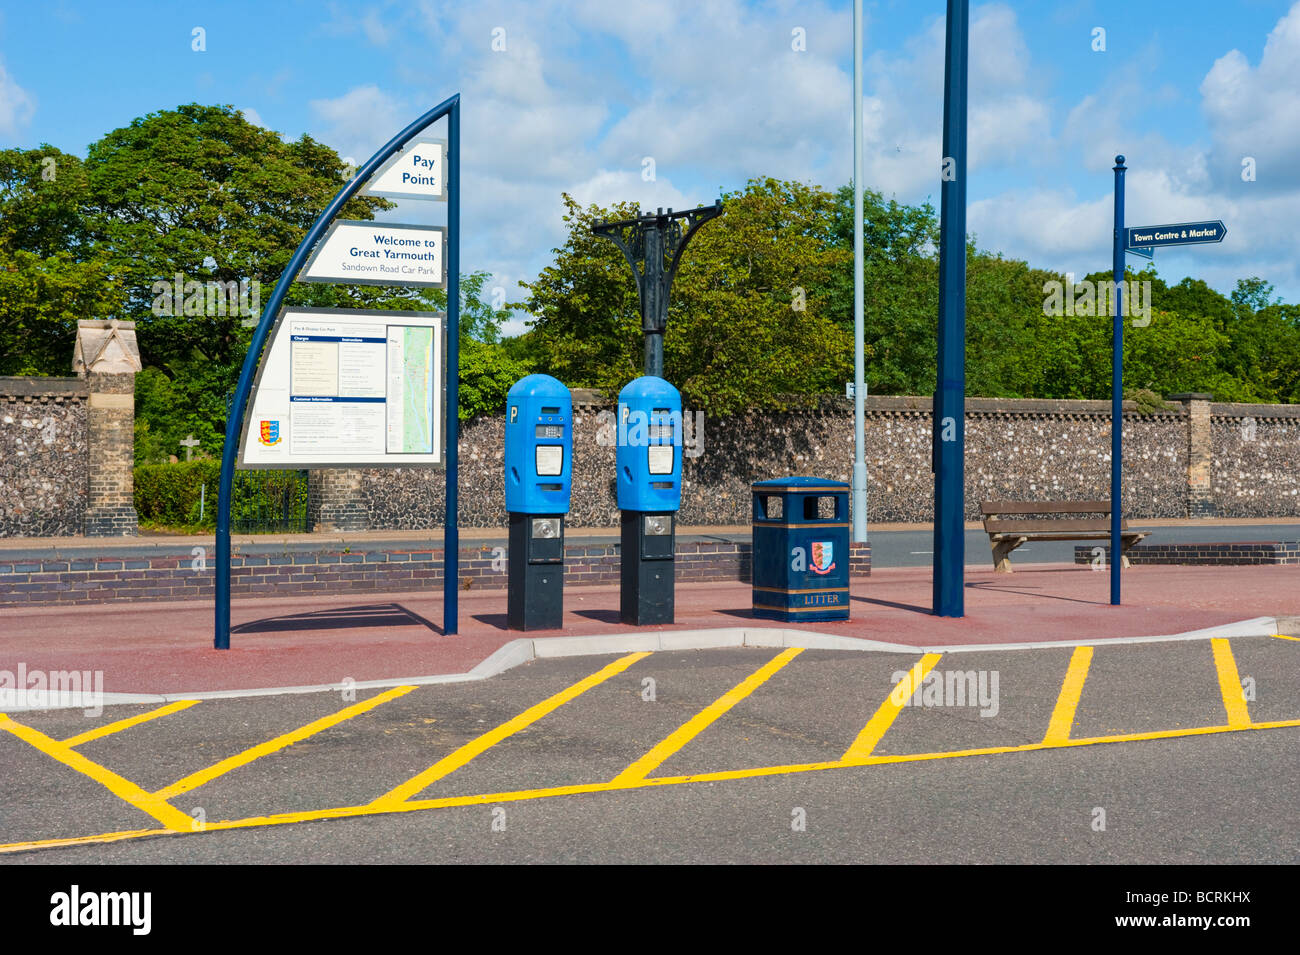 Car parking meters at the Great Yarmouth Car, Coach & Lorry park. - Stock Image